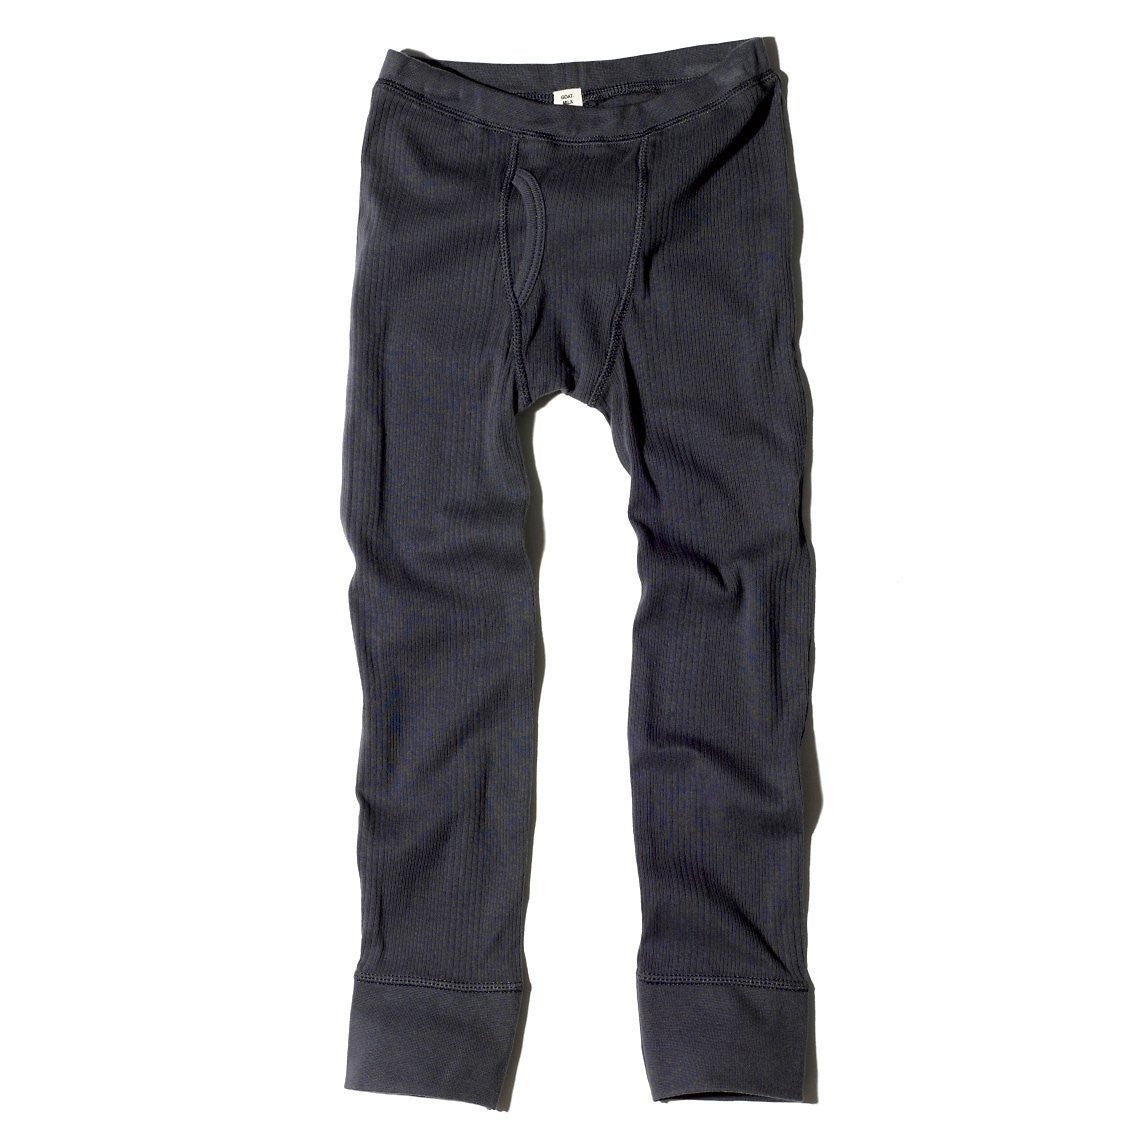 Goat-Milk Boys Ribbed Thermal Bottoms - Navy